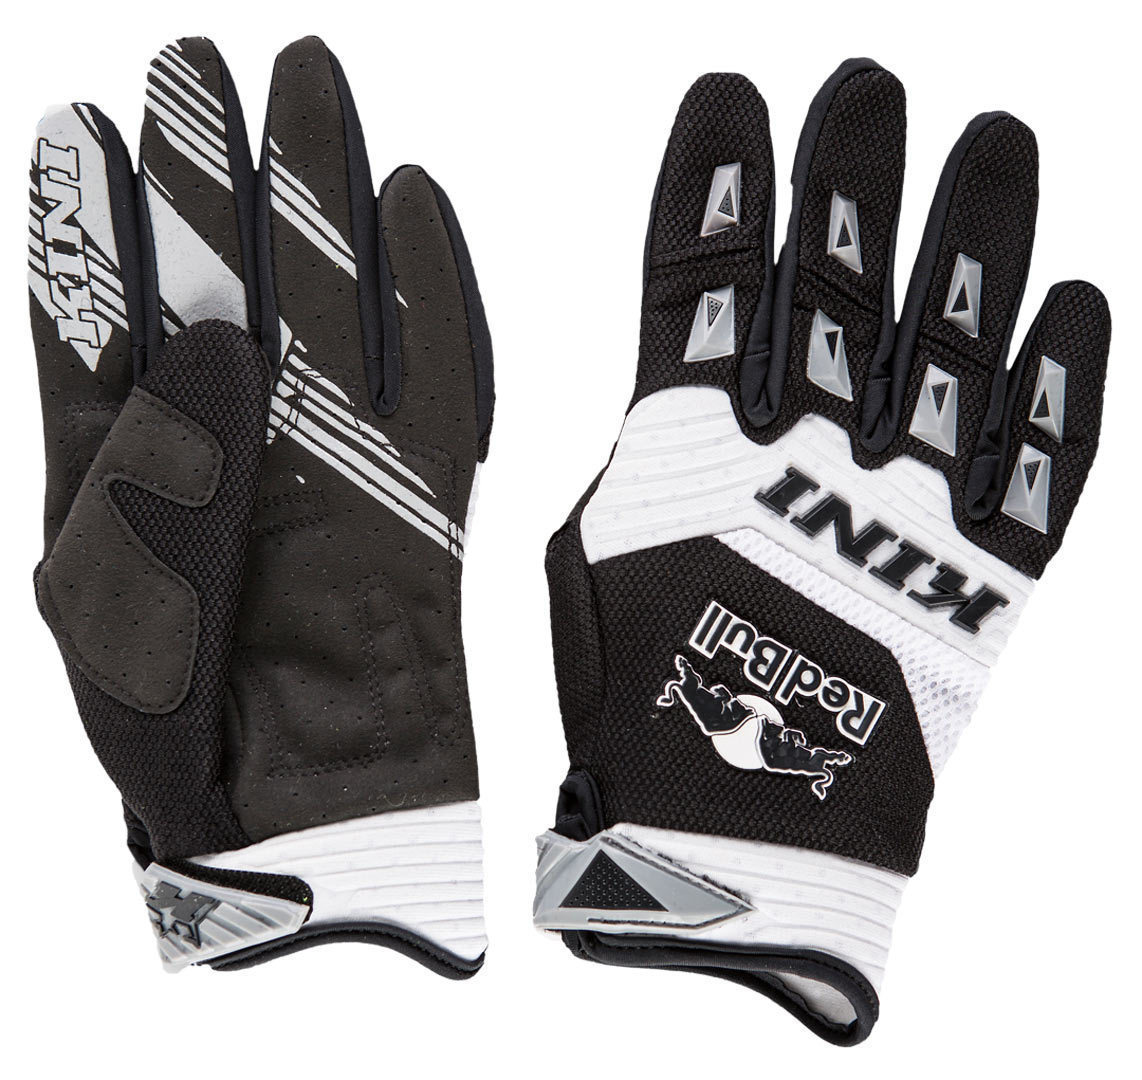 kini-red-bull-competition-gloves-2016-black-s